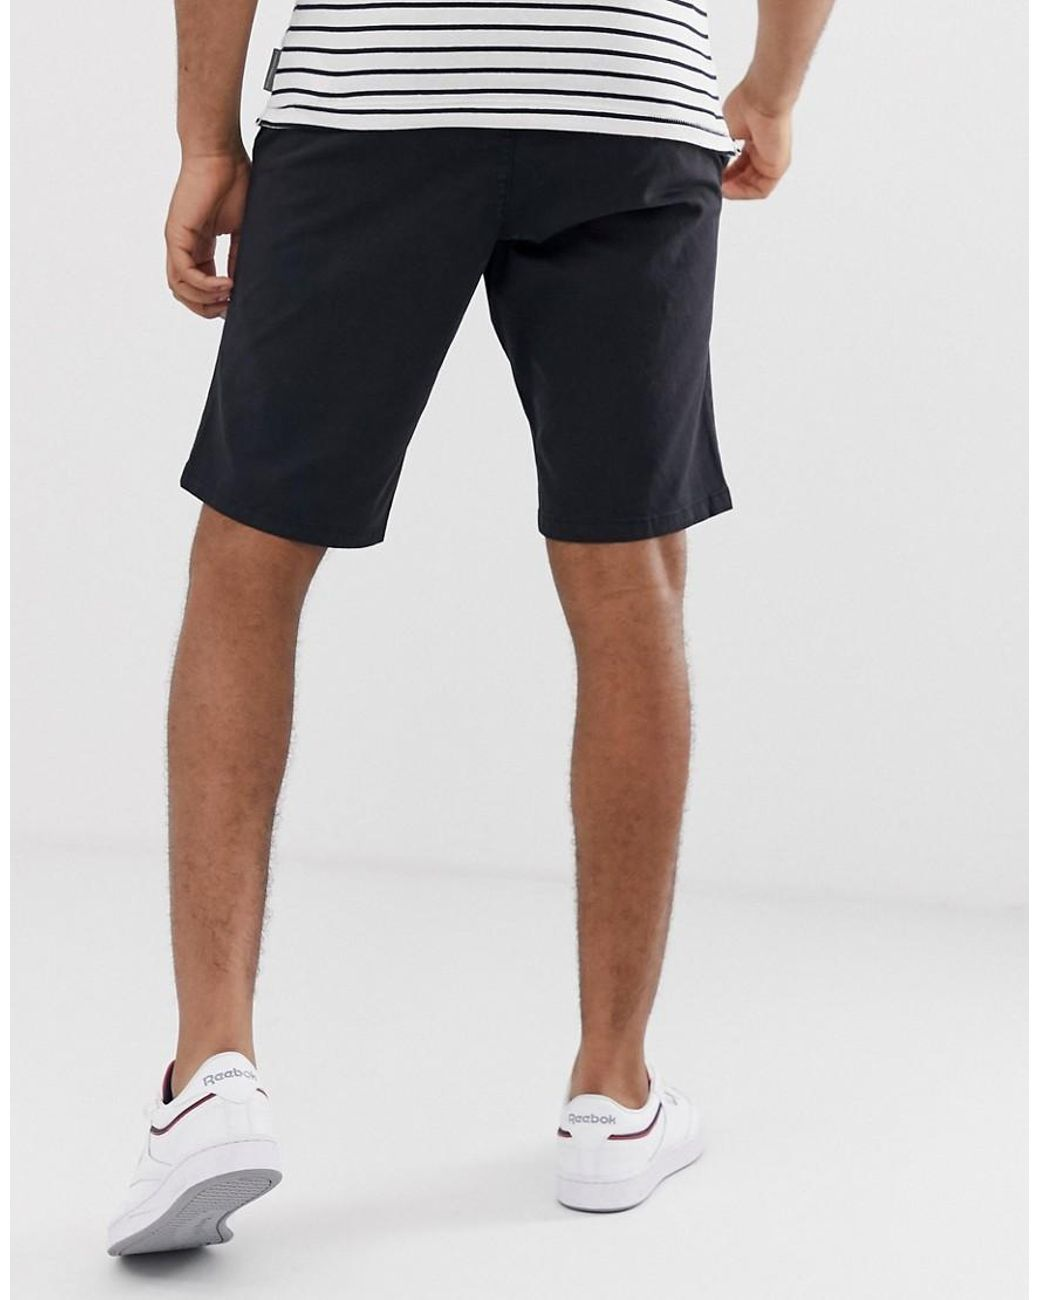 Cool Blue French Connection Men/'s Classic Chino Shorts